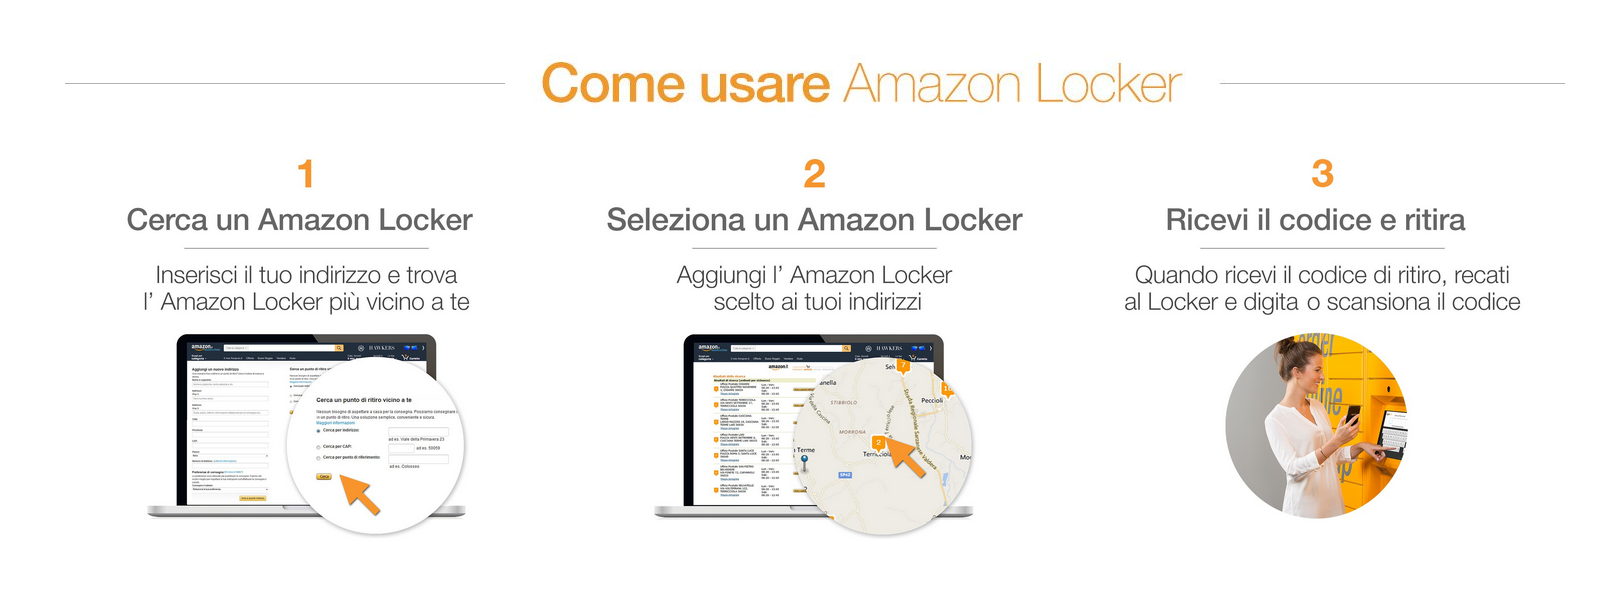 Amazon locker come funziona